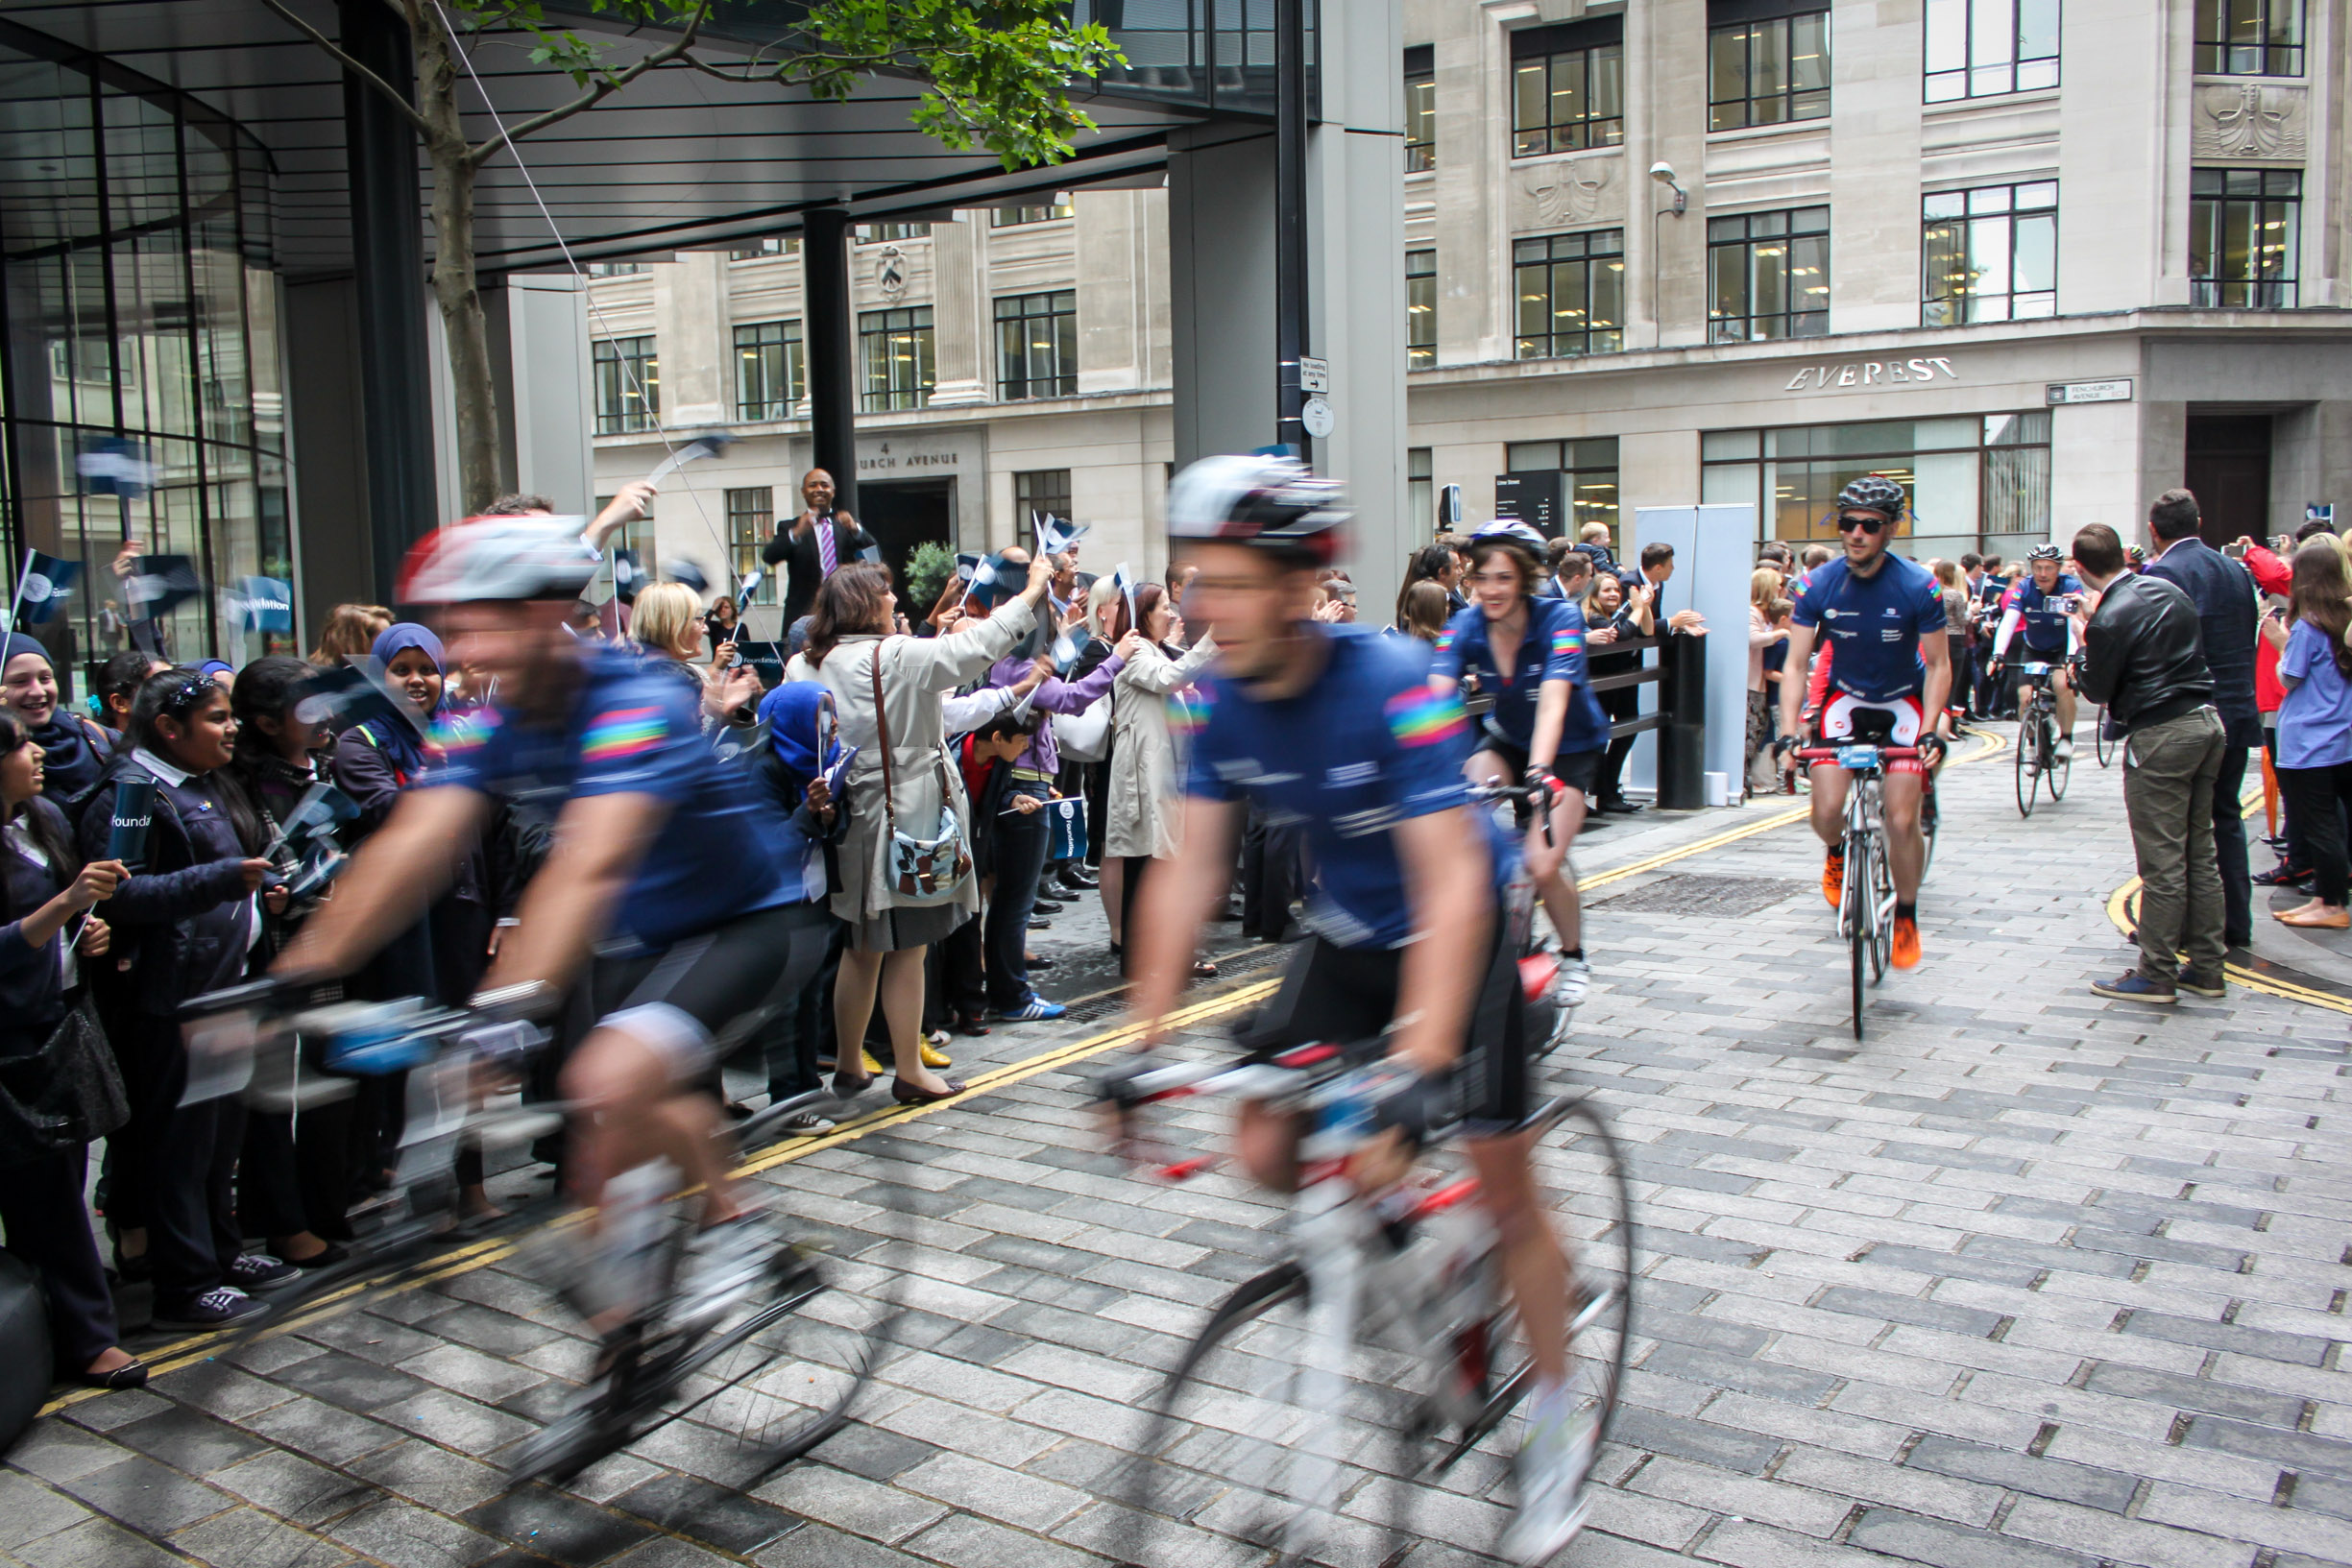 Crossing the finish line outside Lloyd's